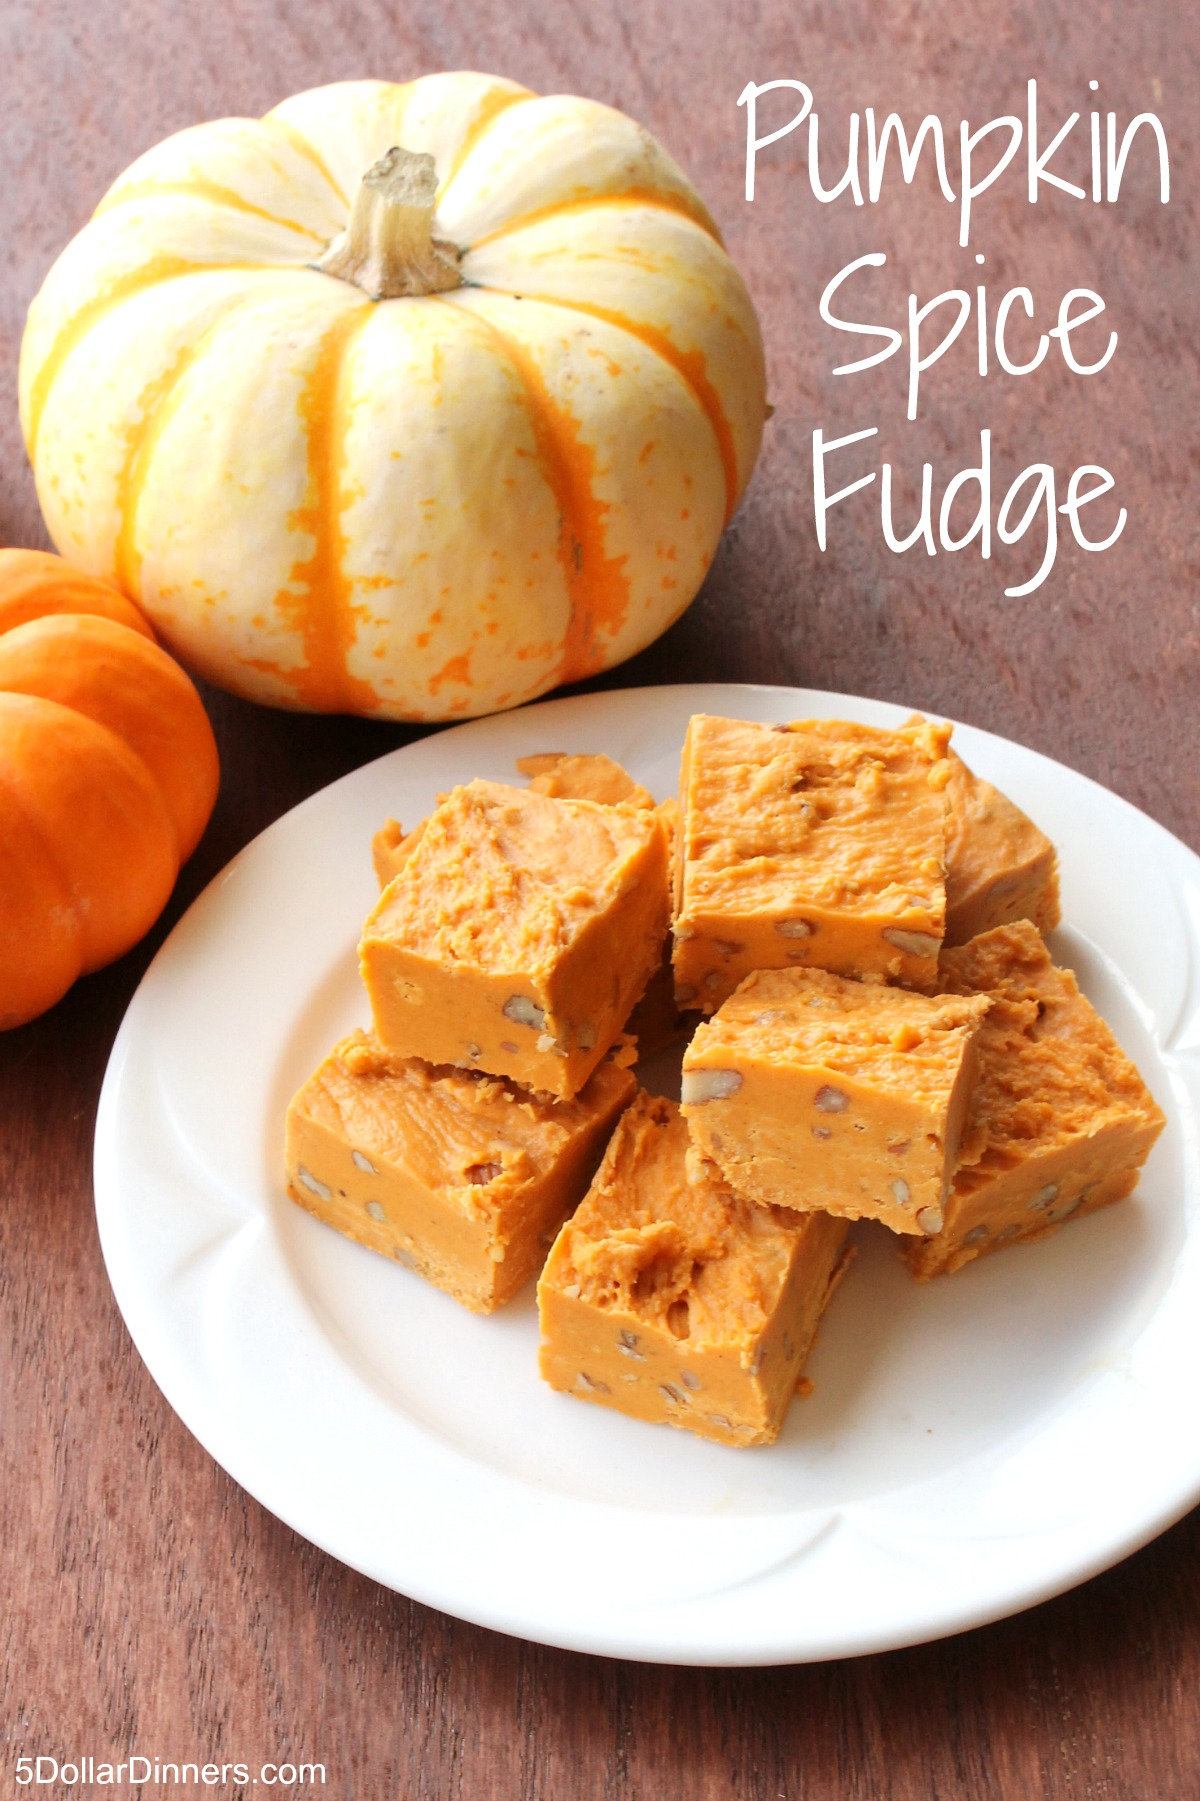 Pumpkin Spice Fudge from 5DollarDinners.com